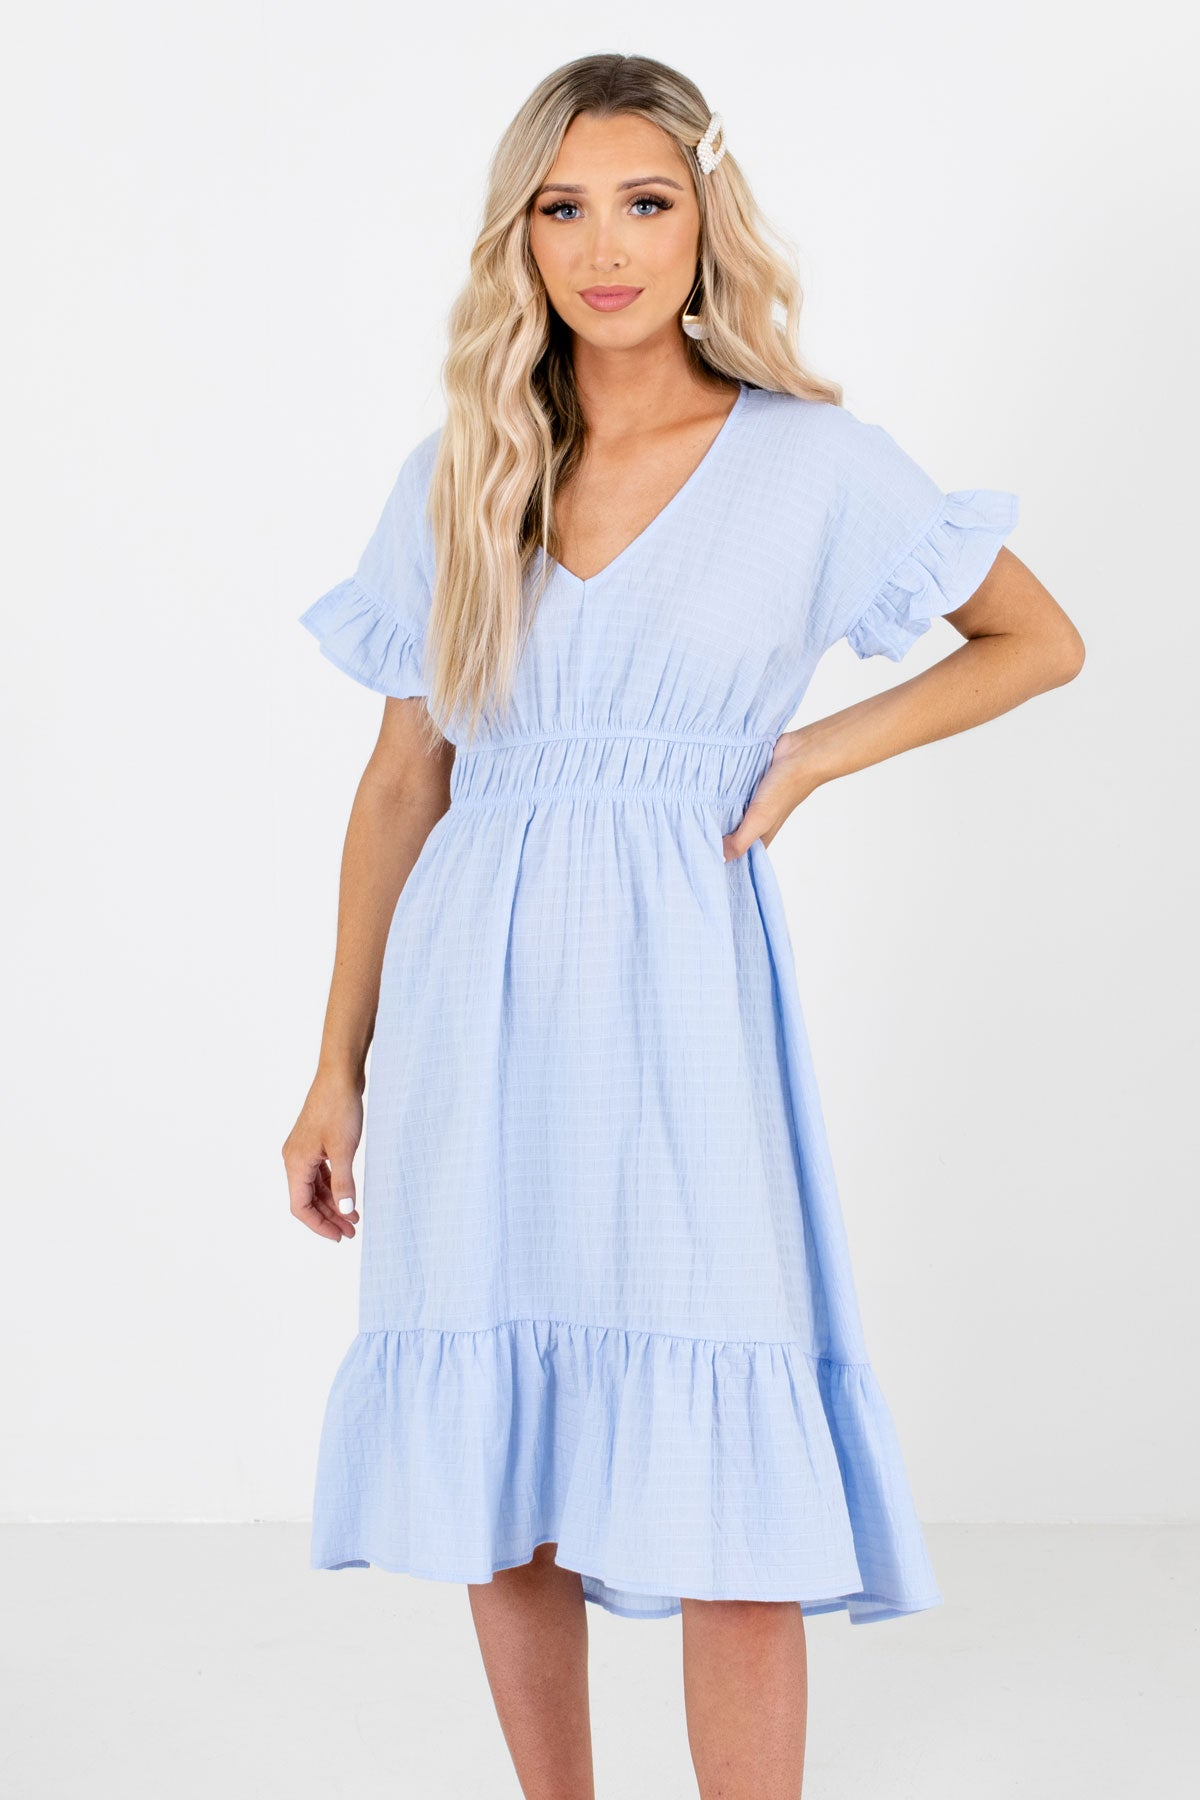 Light Blue V-Neckline Boutique Knee-Length Dresses for Women